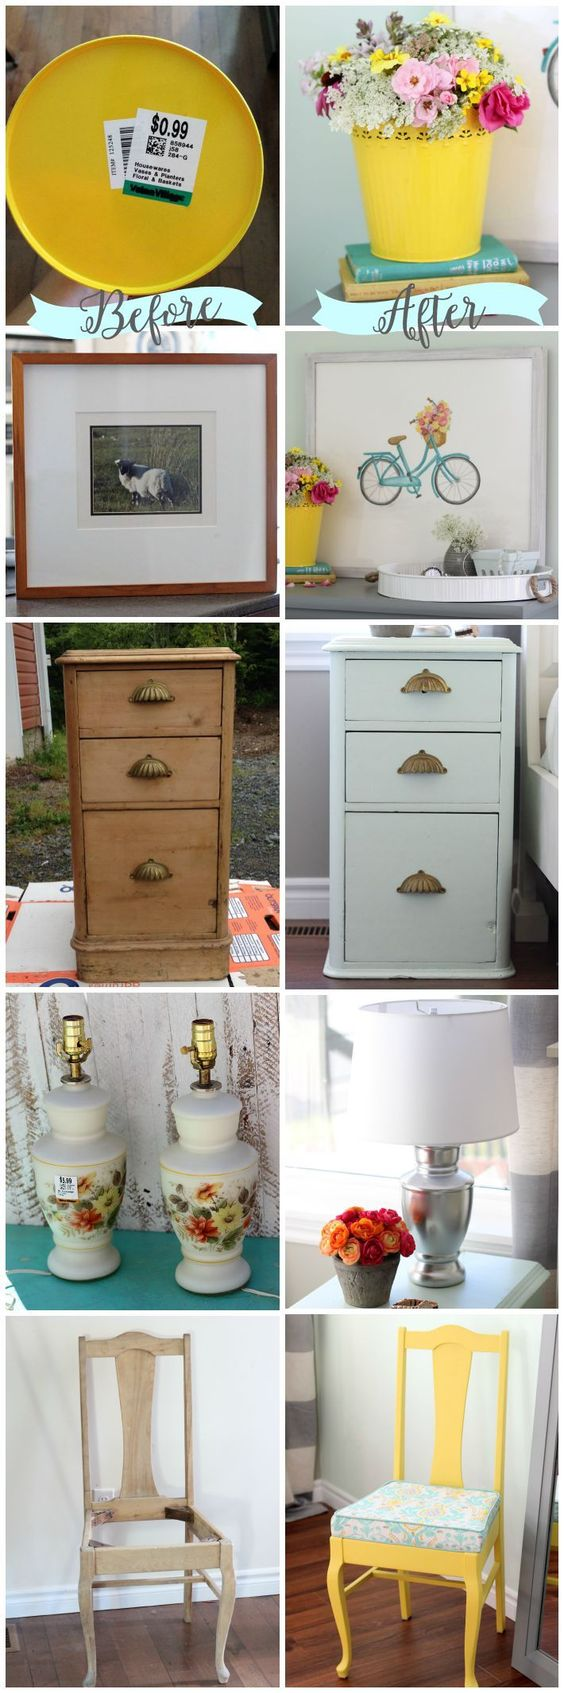 Incredible diy ideas to change a thrift store find to awesome home decor!: